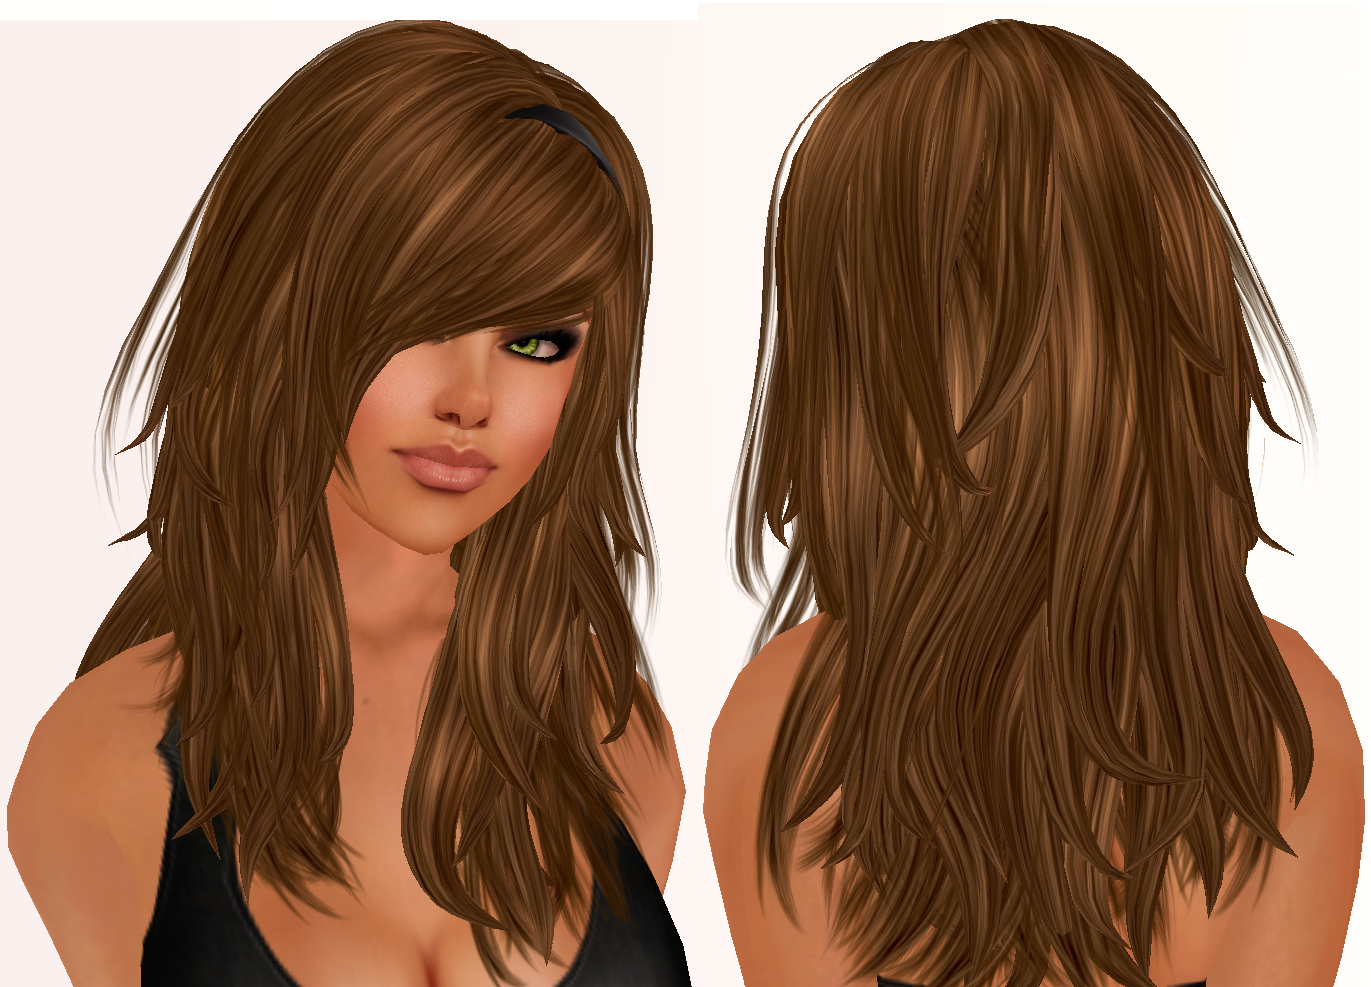 Cute Hairstyles For Medium Hair With Side Bangs And Layers Pertaining To Current Medium Hairstyles With Lots Of Layers (View 20 of 20)